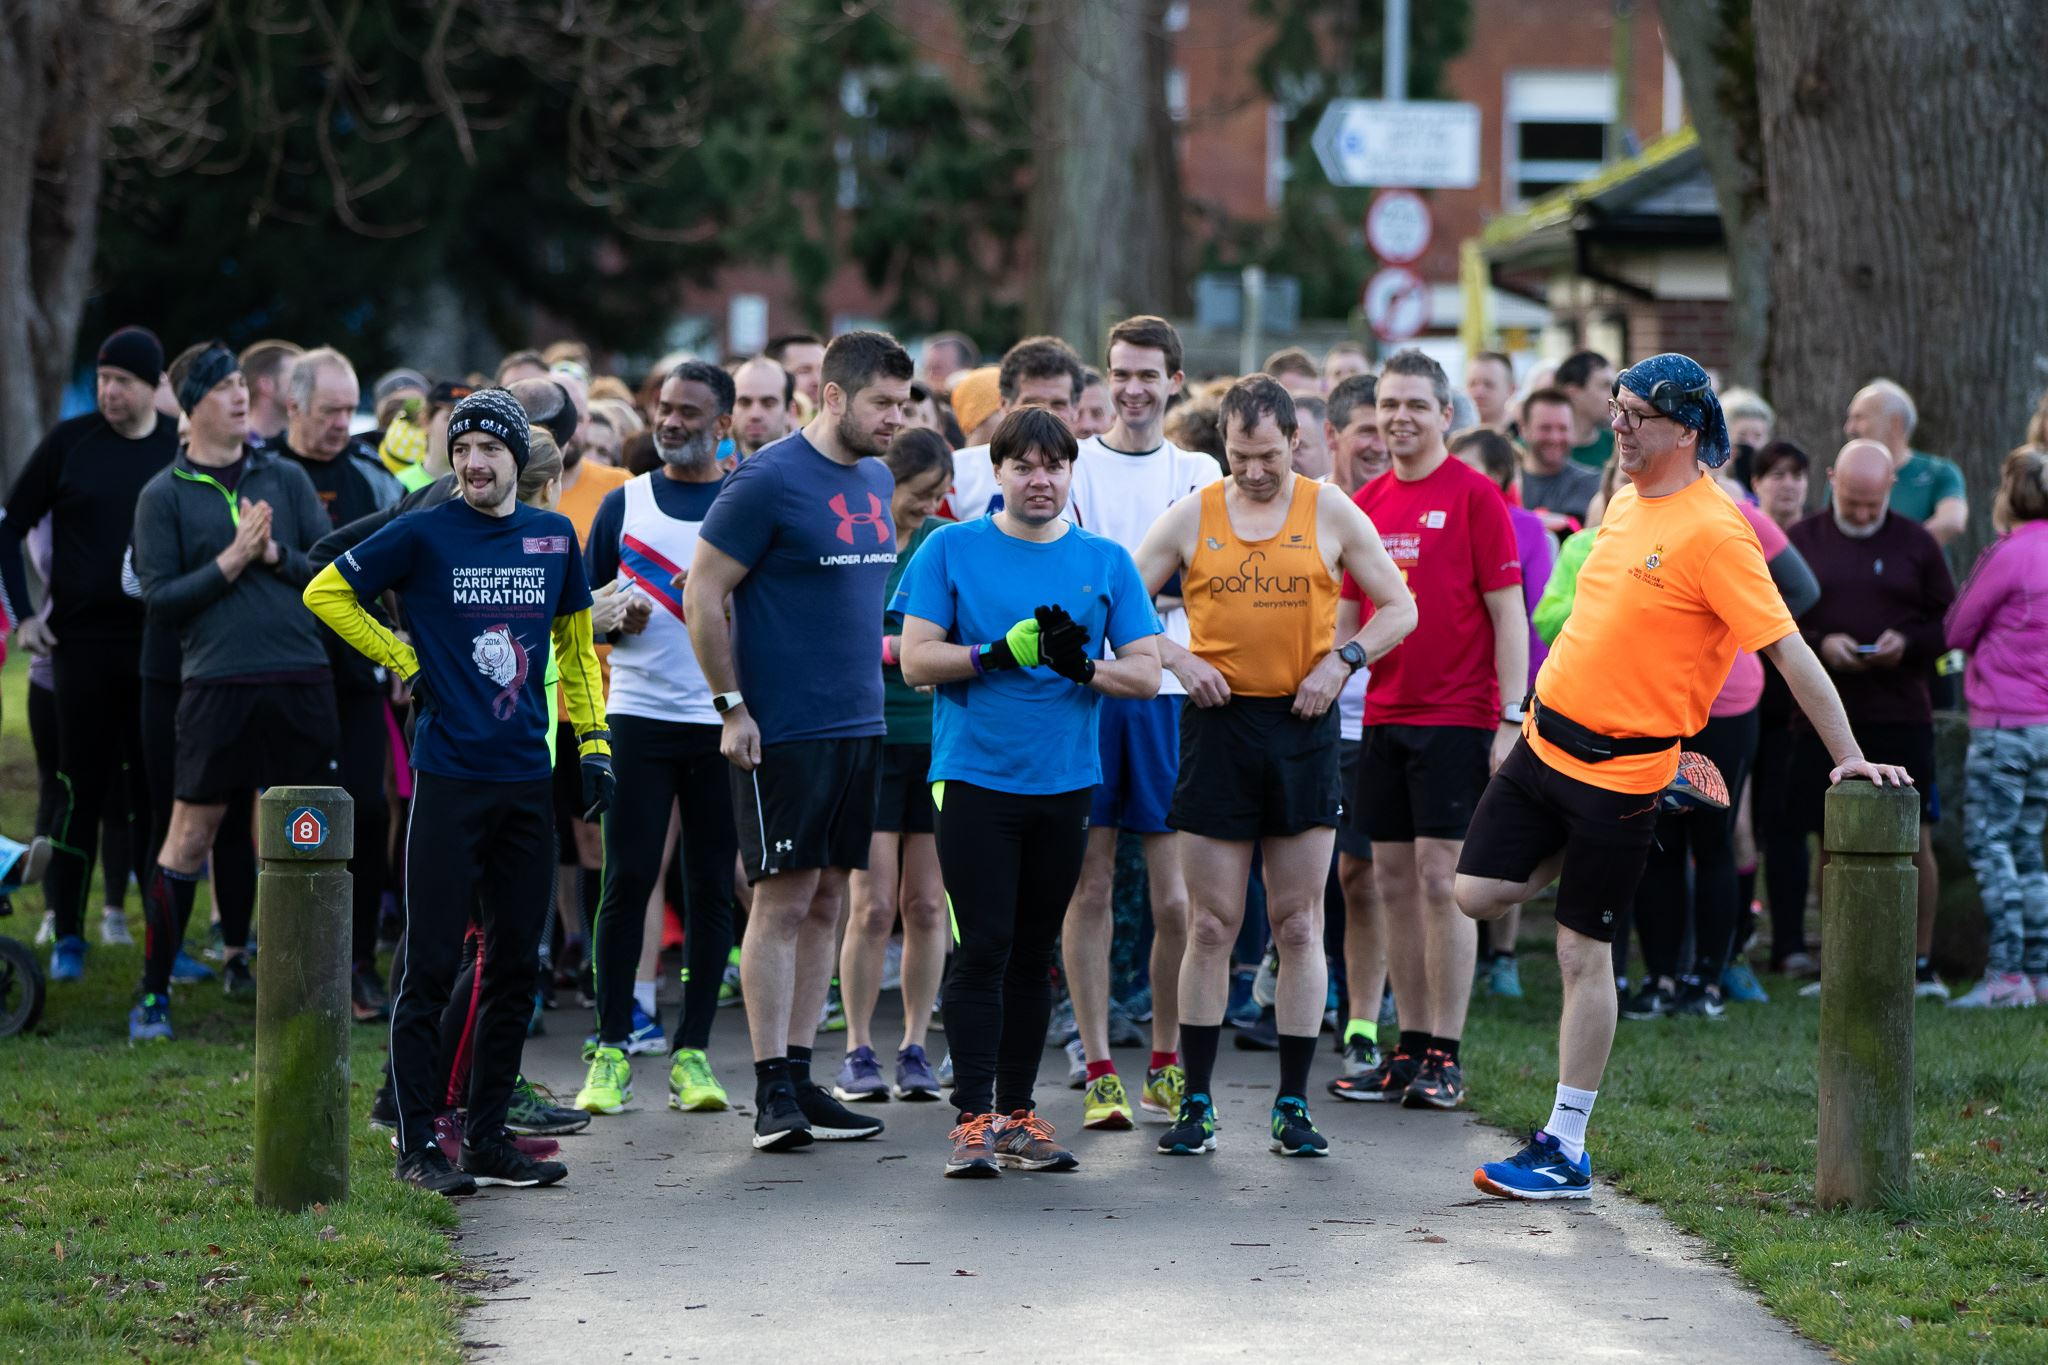 The start line for the Groe parkrun